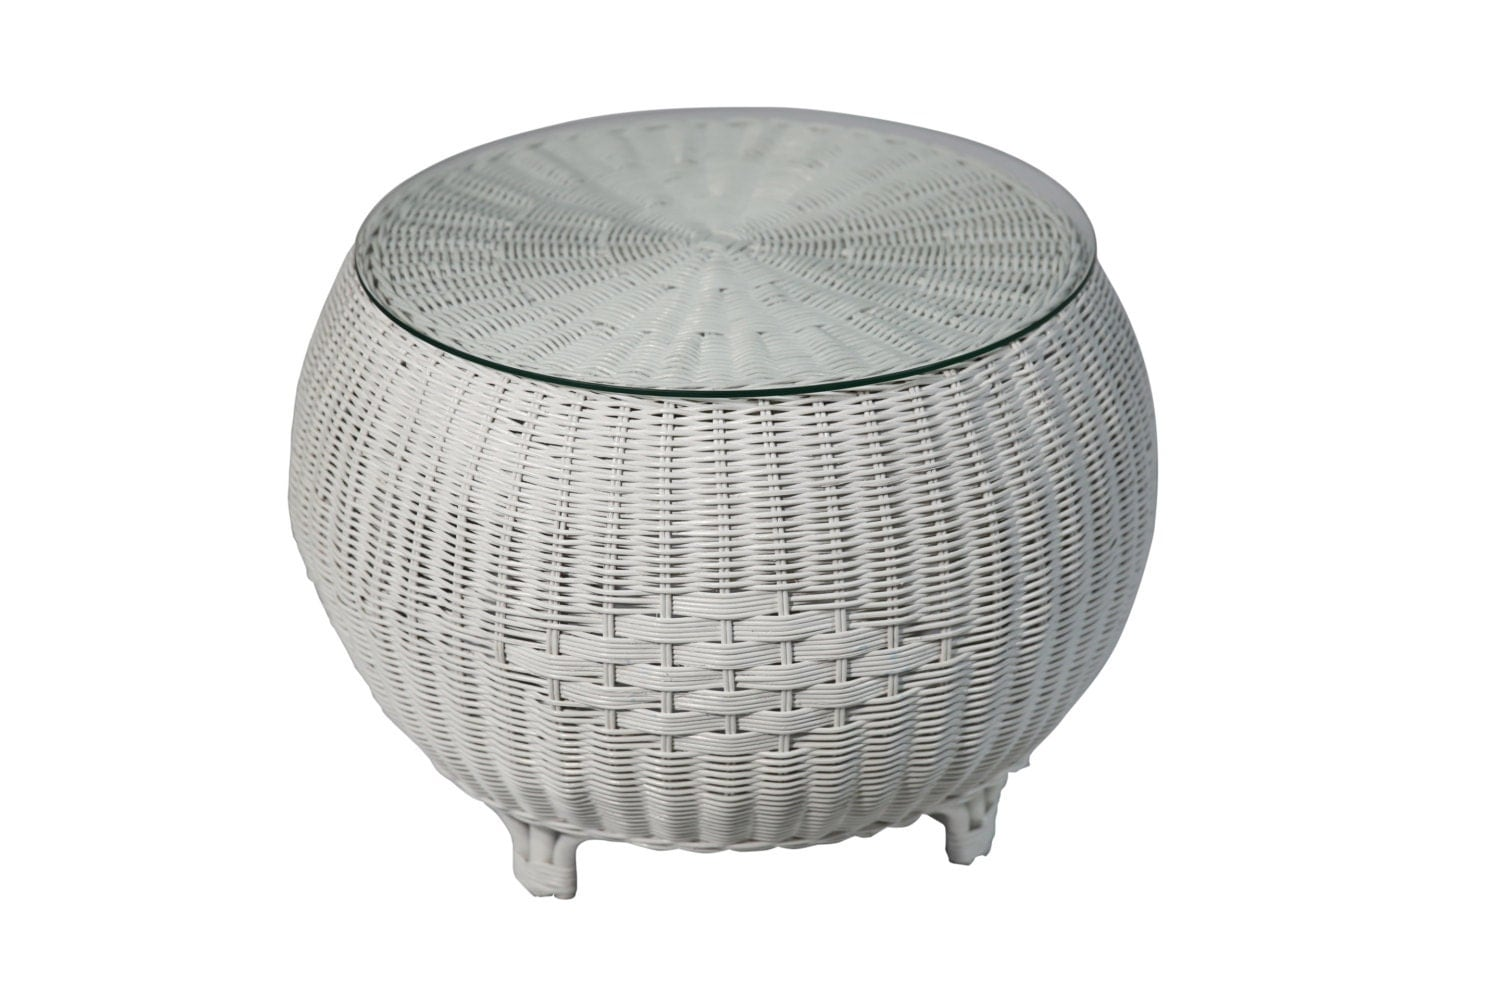 Rattan Round Coffee Table In White